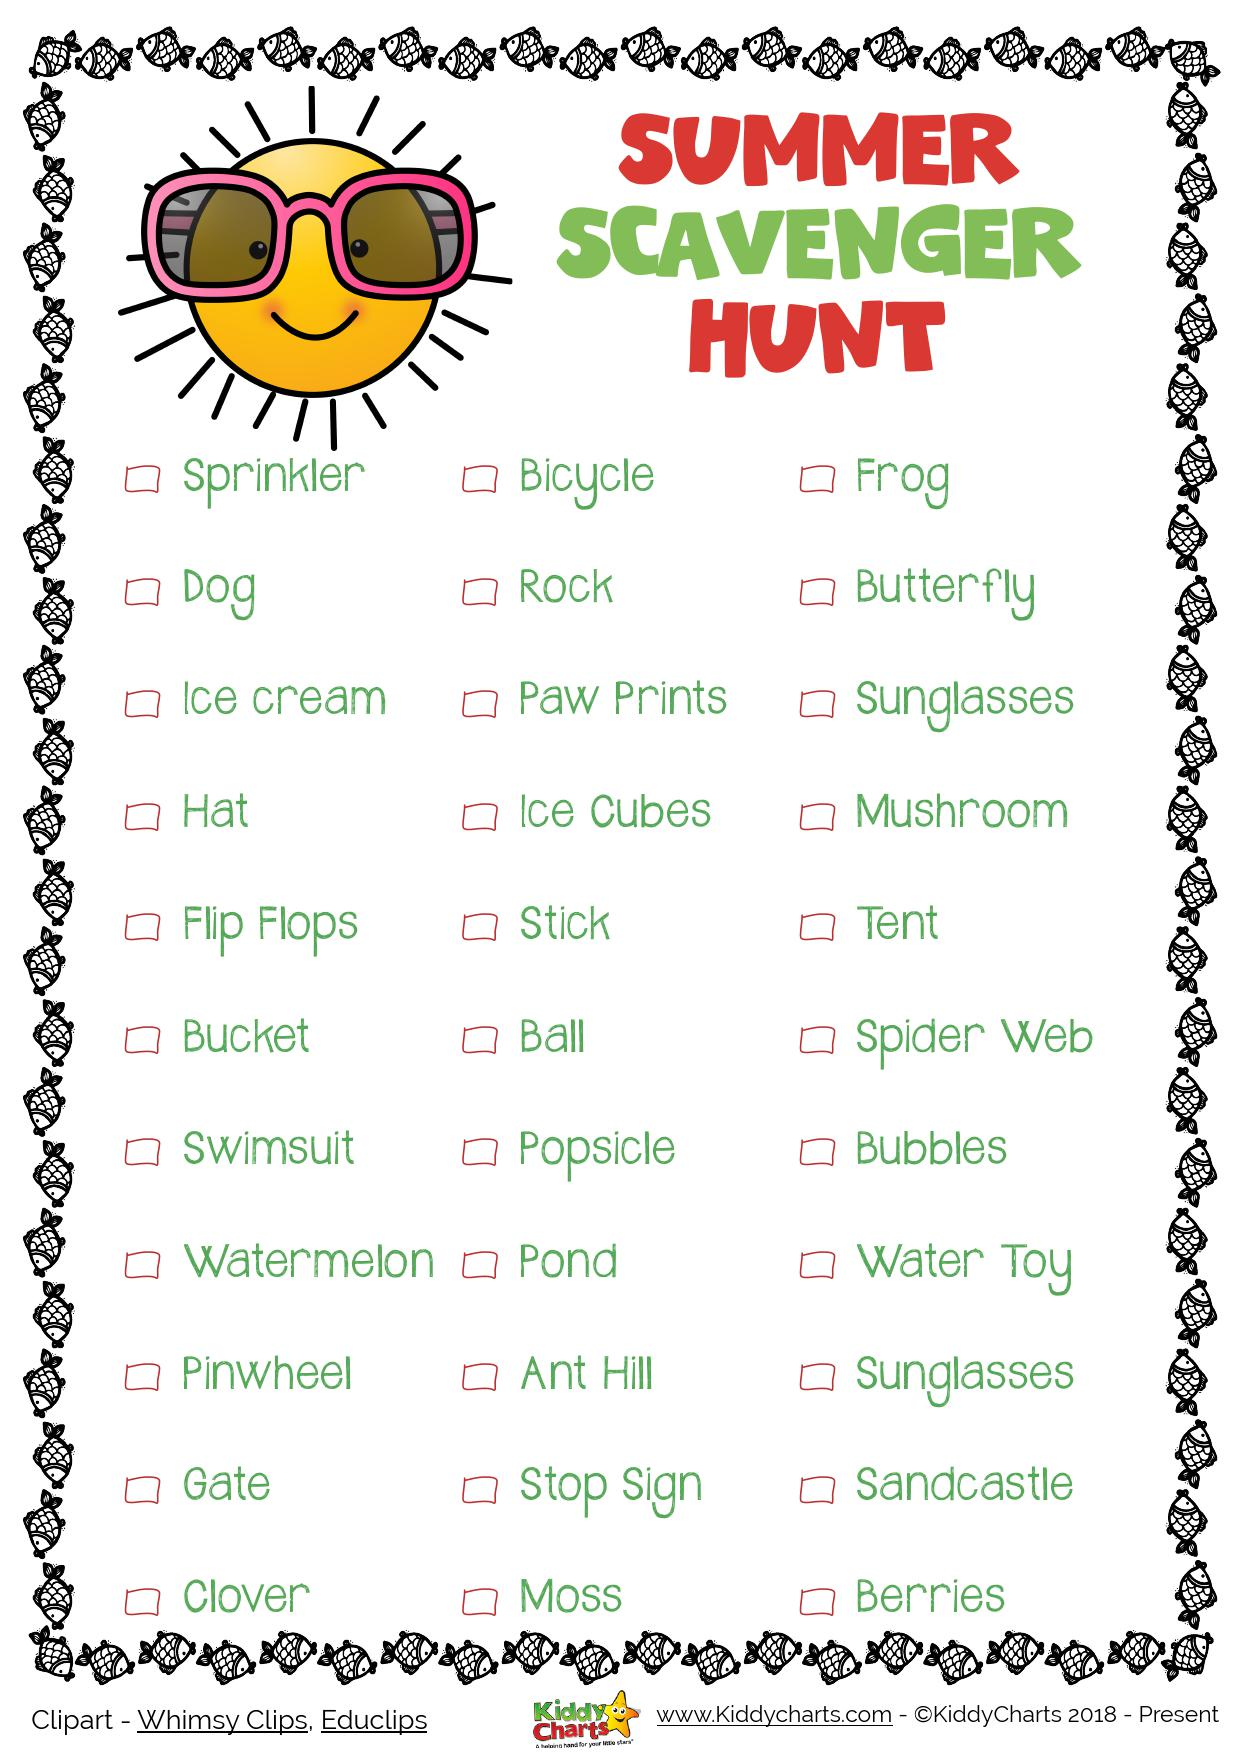 Hre is a summer scavenger hunt for you to try - lots of great things to look for. Why not visit the site for the other summer activities we have as well? #summer #printables #kids